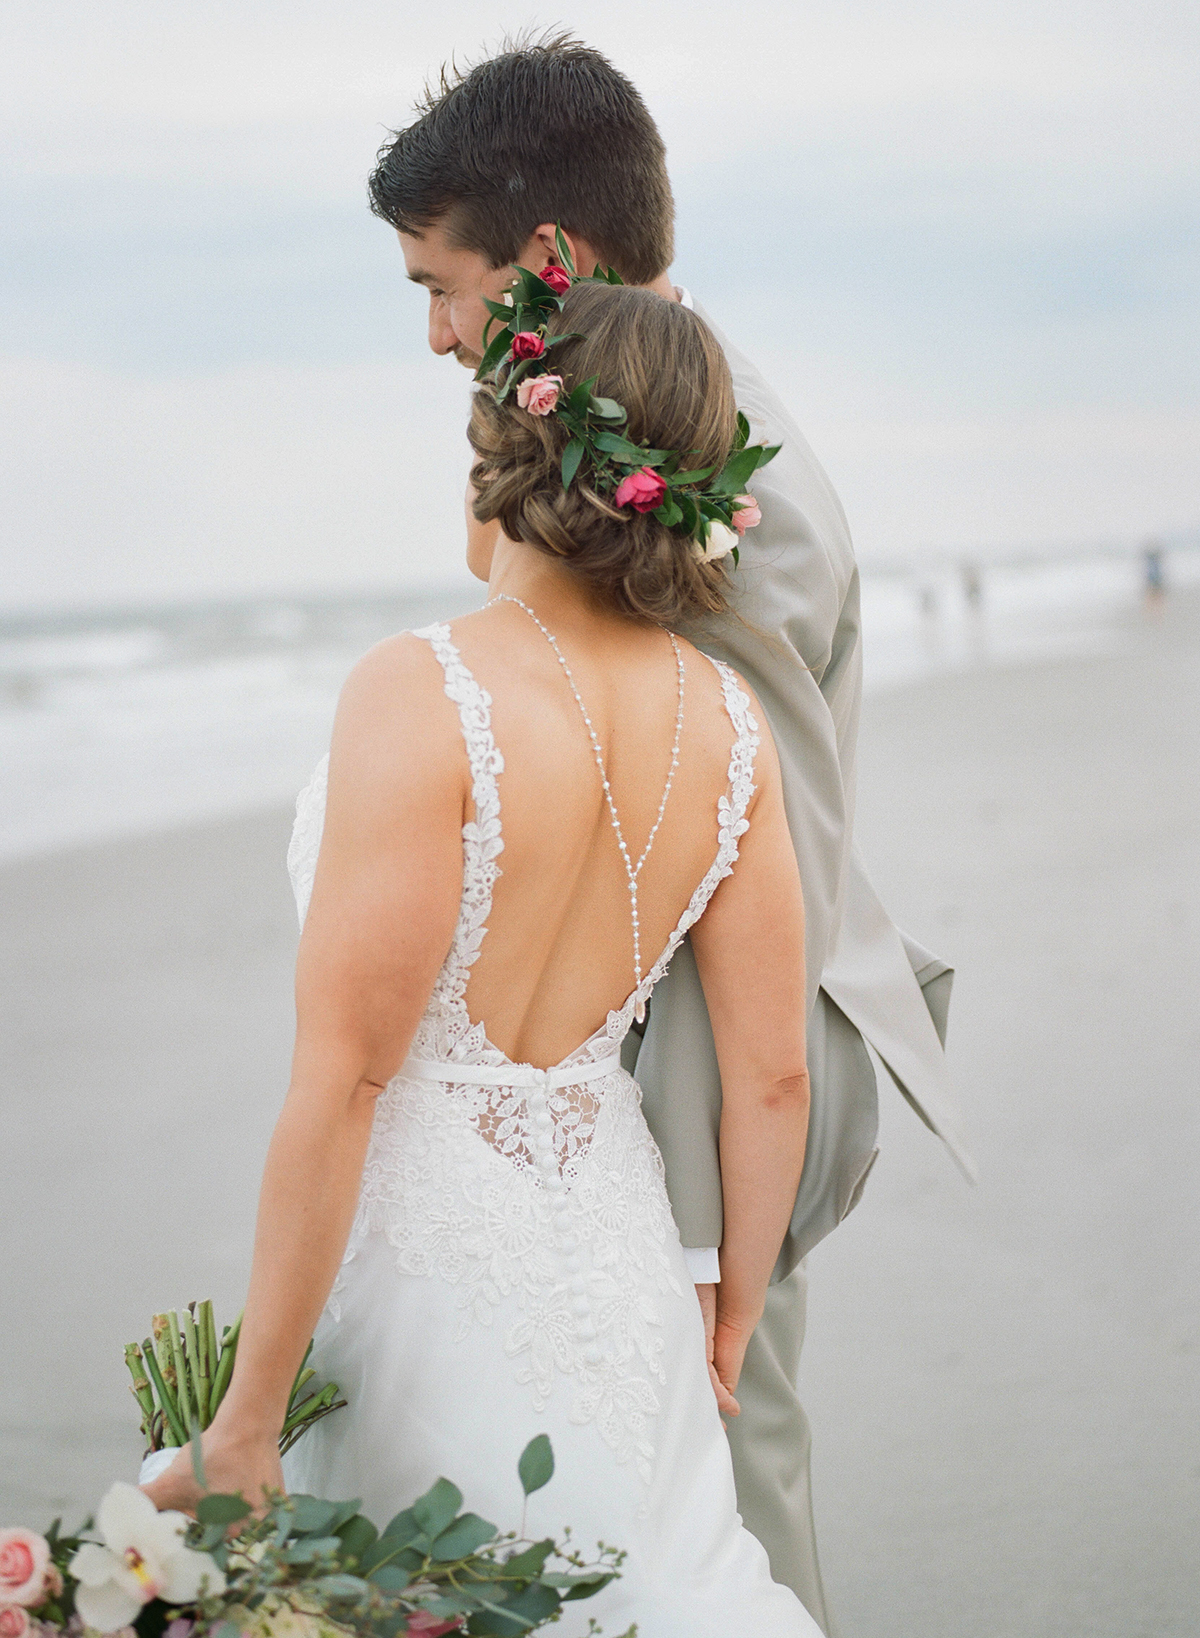 Top 4 Beach Wedding Dresses for an Oceanside Ceremony by Casablanca Bridal | Style 2210 Fit and Flare Silky Charmeuse Simple Wedding Dress